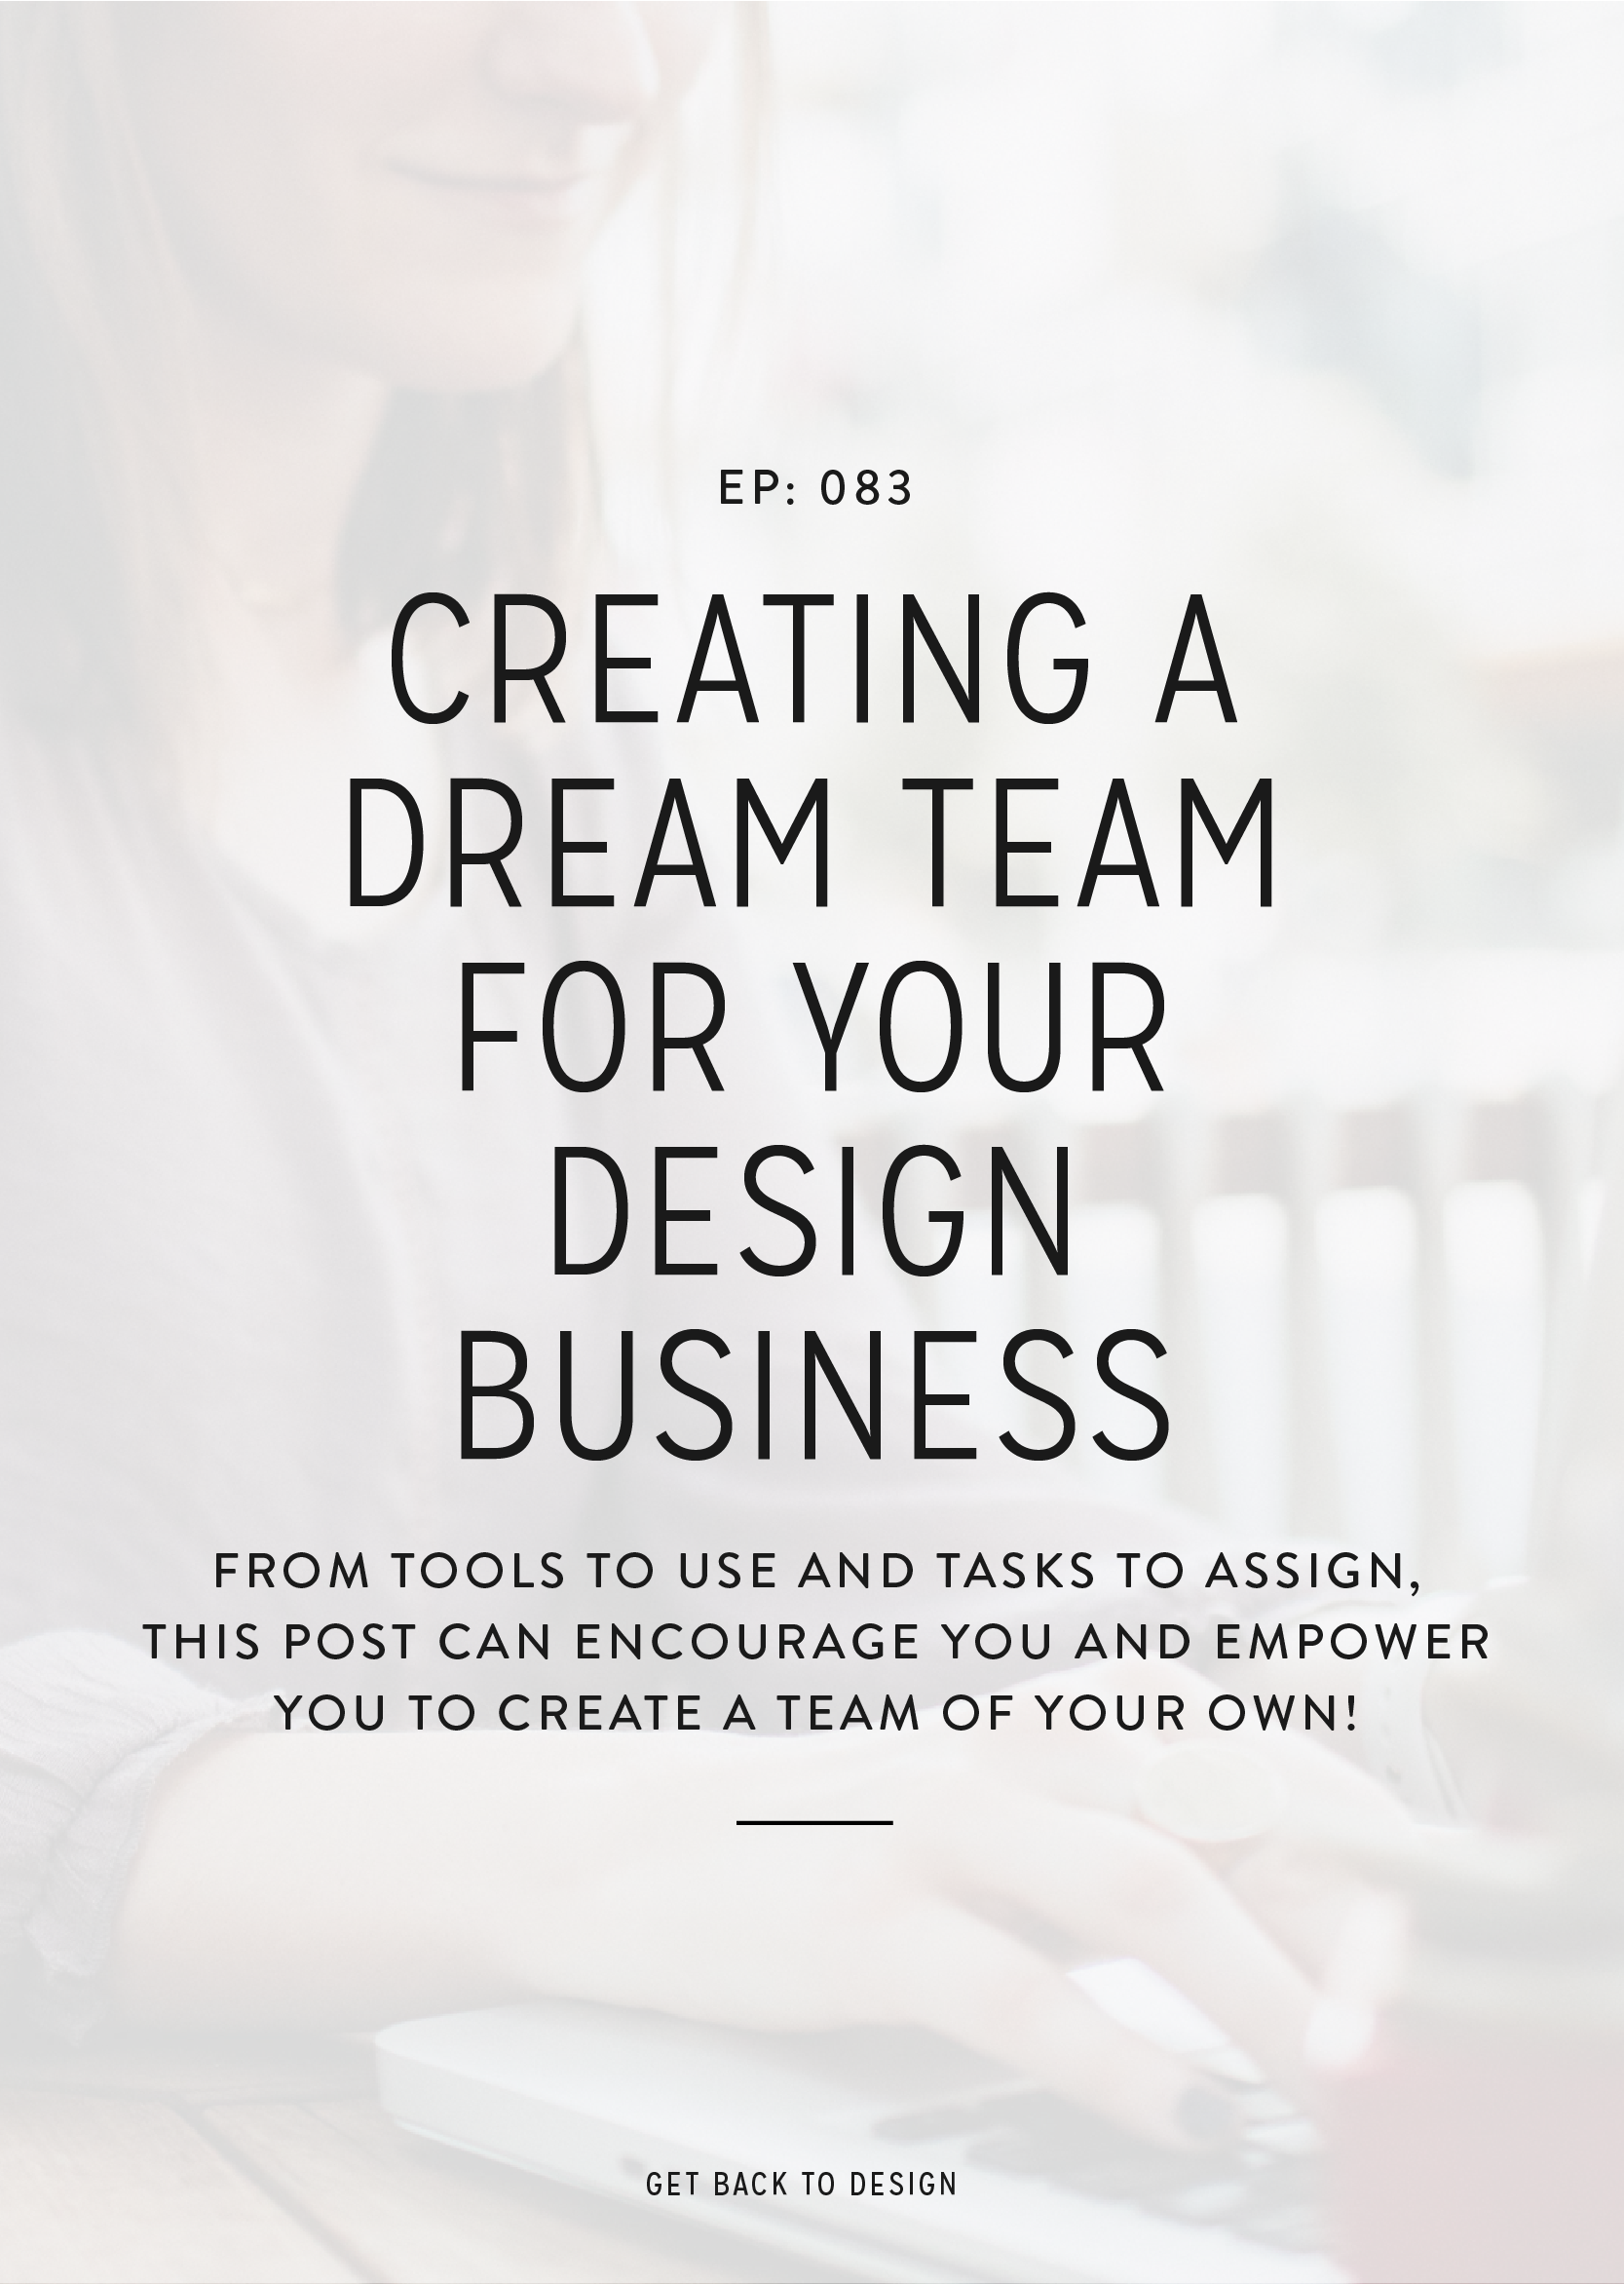 From tools to use and tasks to assign, this podcast episode can encourage you and empower you to create a team of your own!